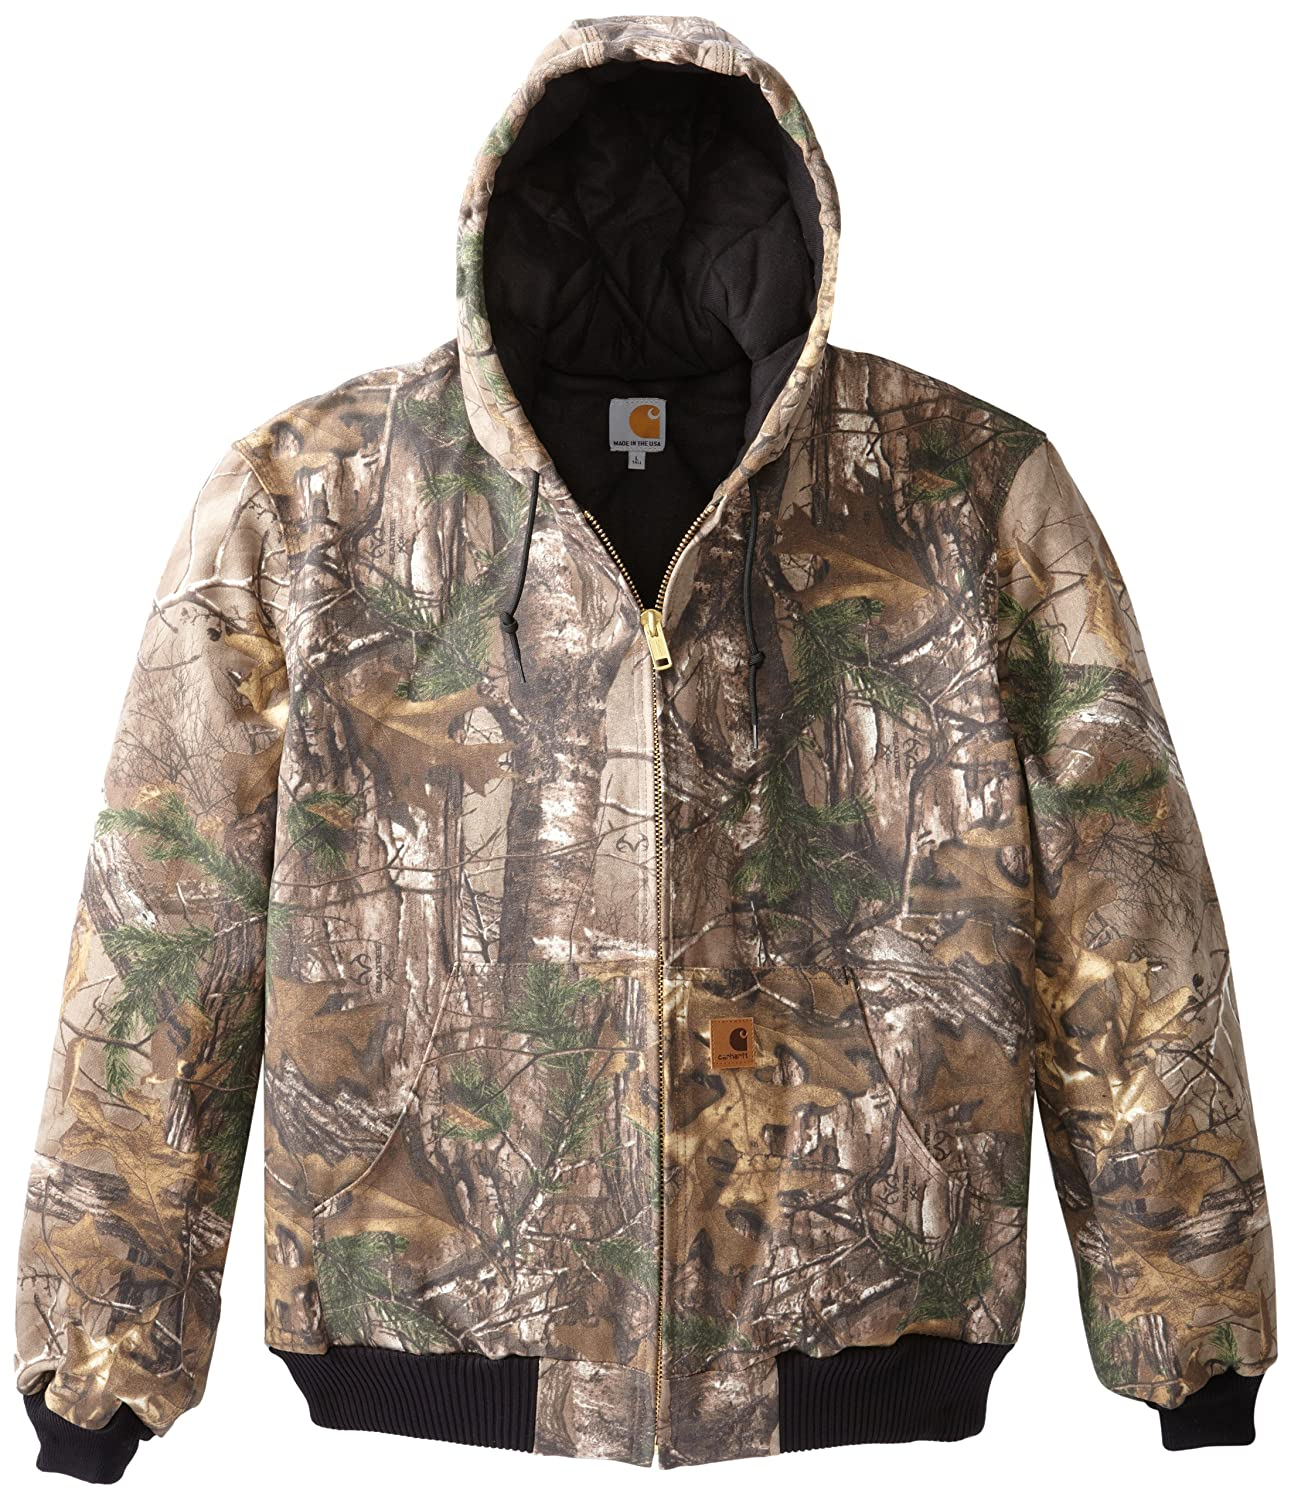 Mens J221 Carhartt Mens Big /& Tall Quilted Flannel Lined Camo Active Jacket Carhartt Sportswear